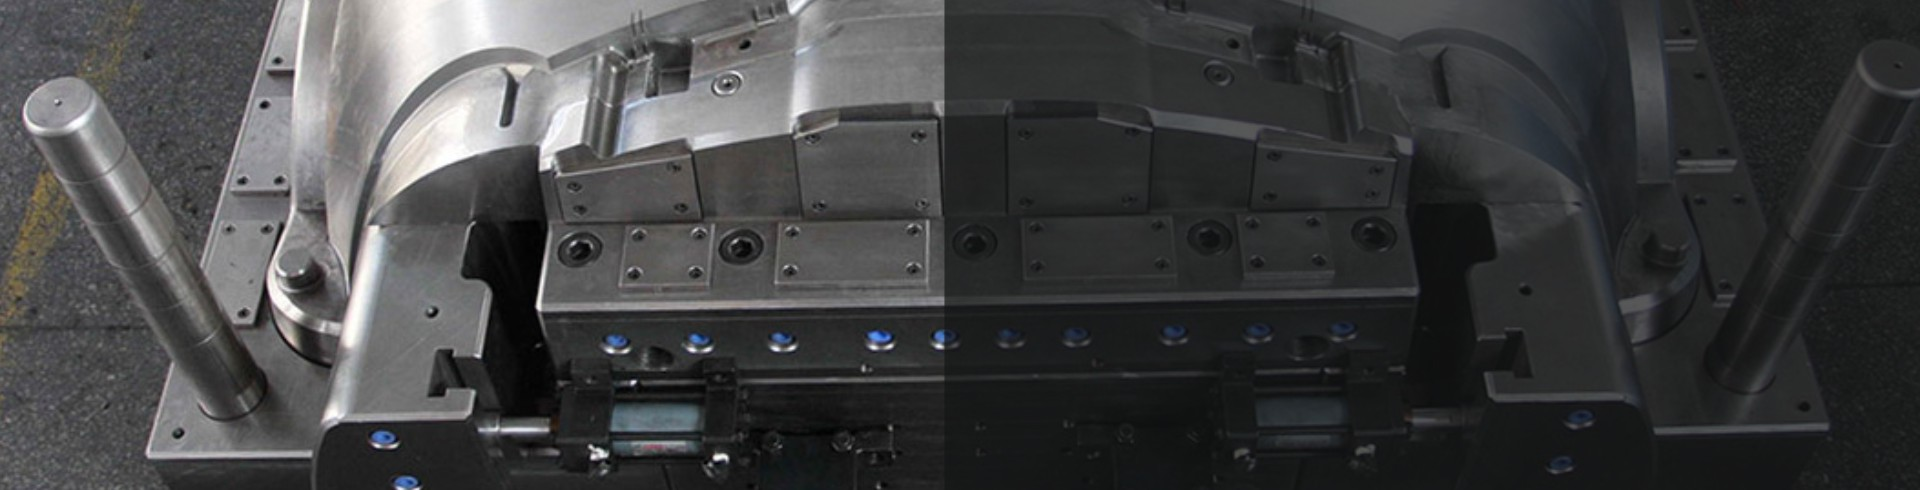 Rapid tooling - banner